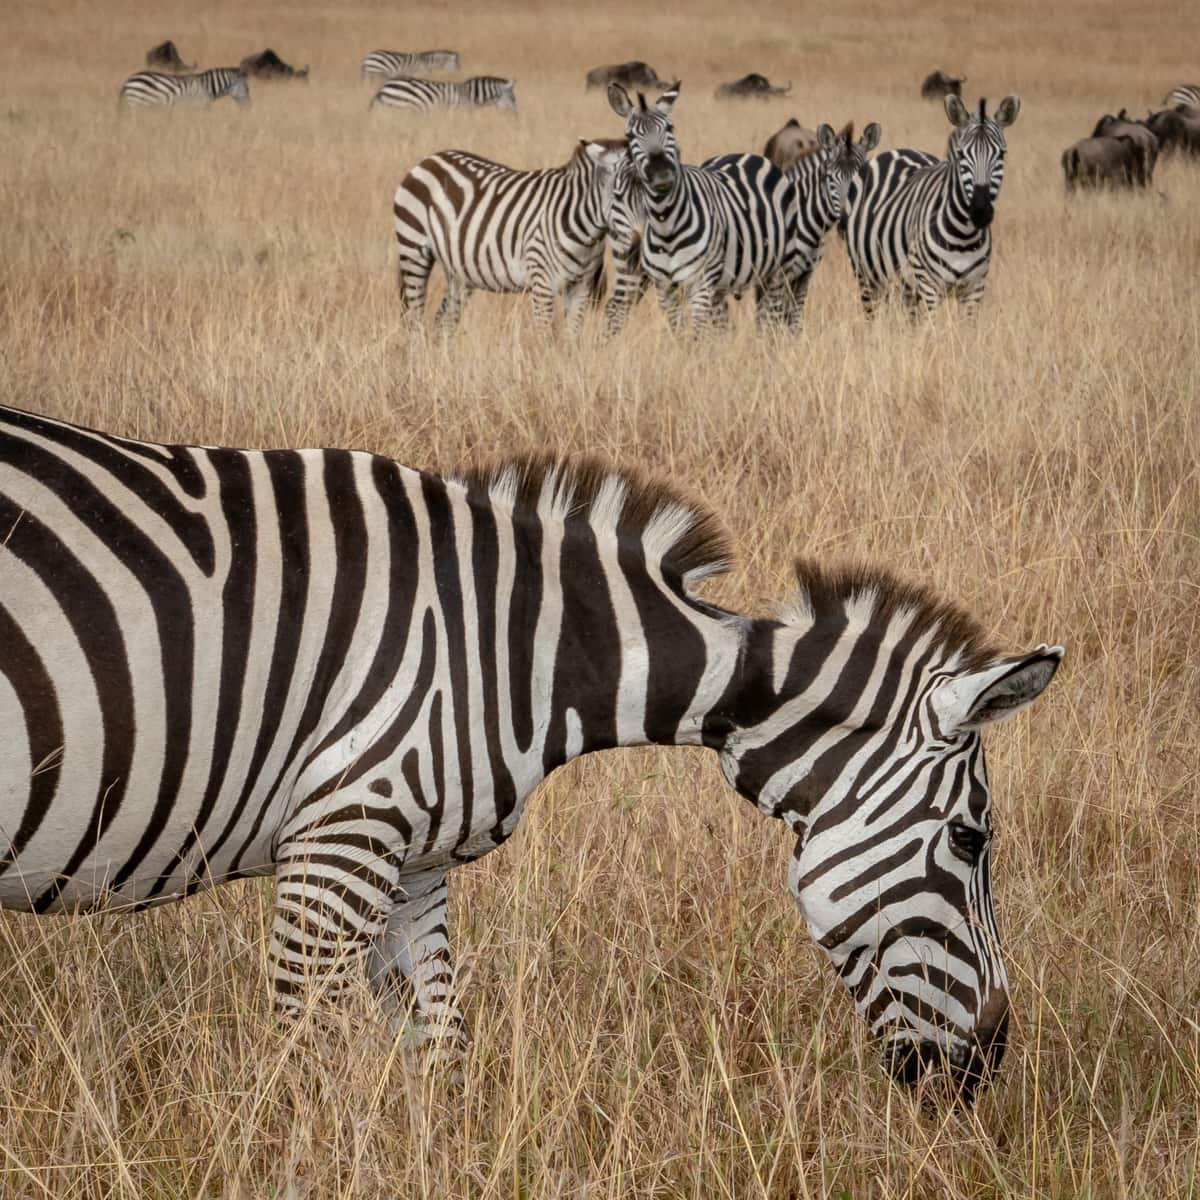 Zebra on the Masai Mara plains in Kenya